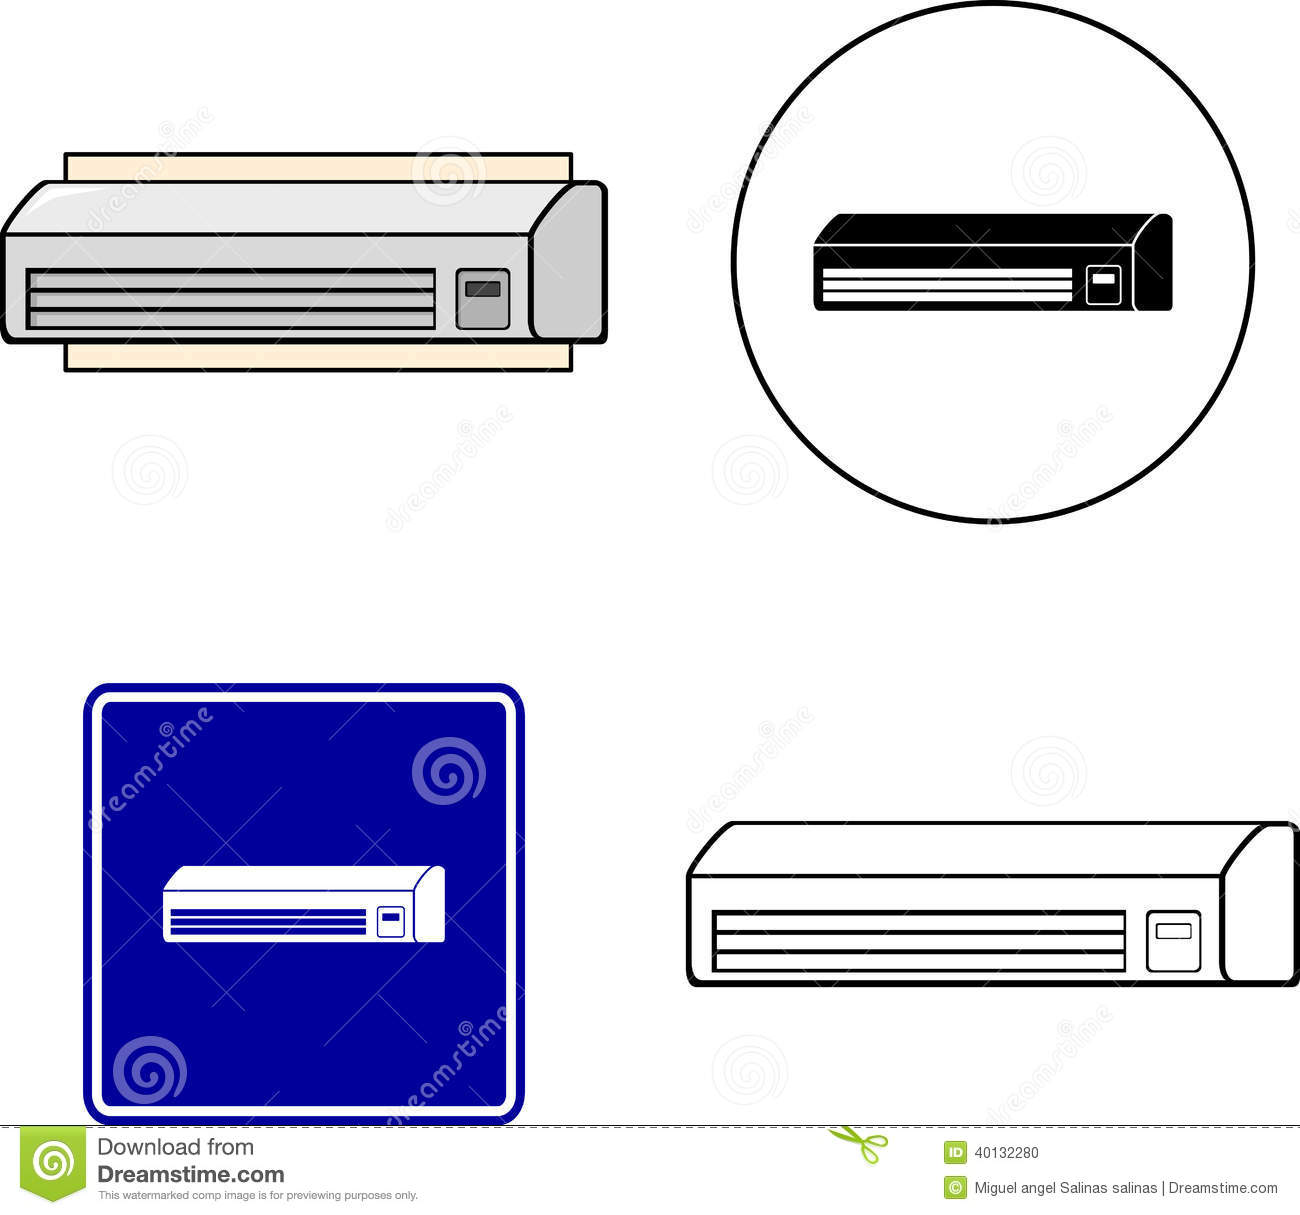 Air conditioner mini split stock illustration. Image of ...